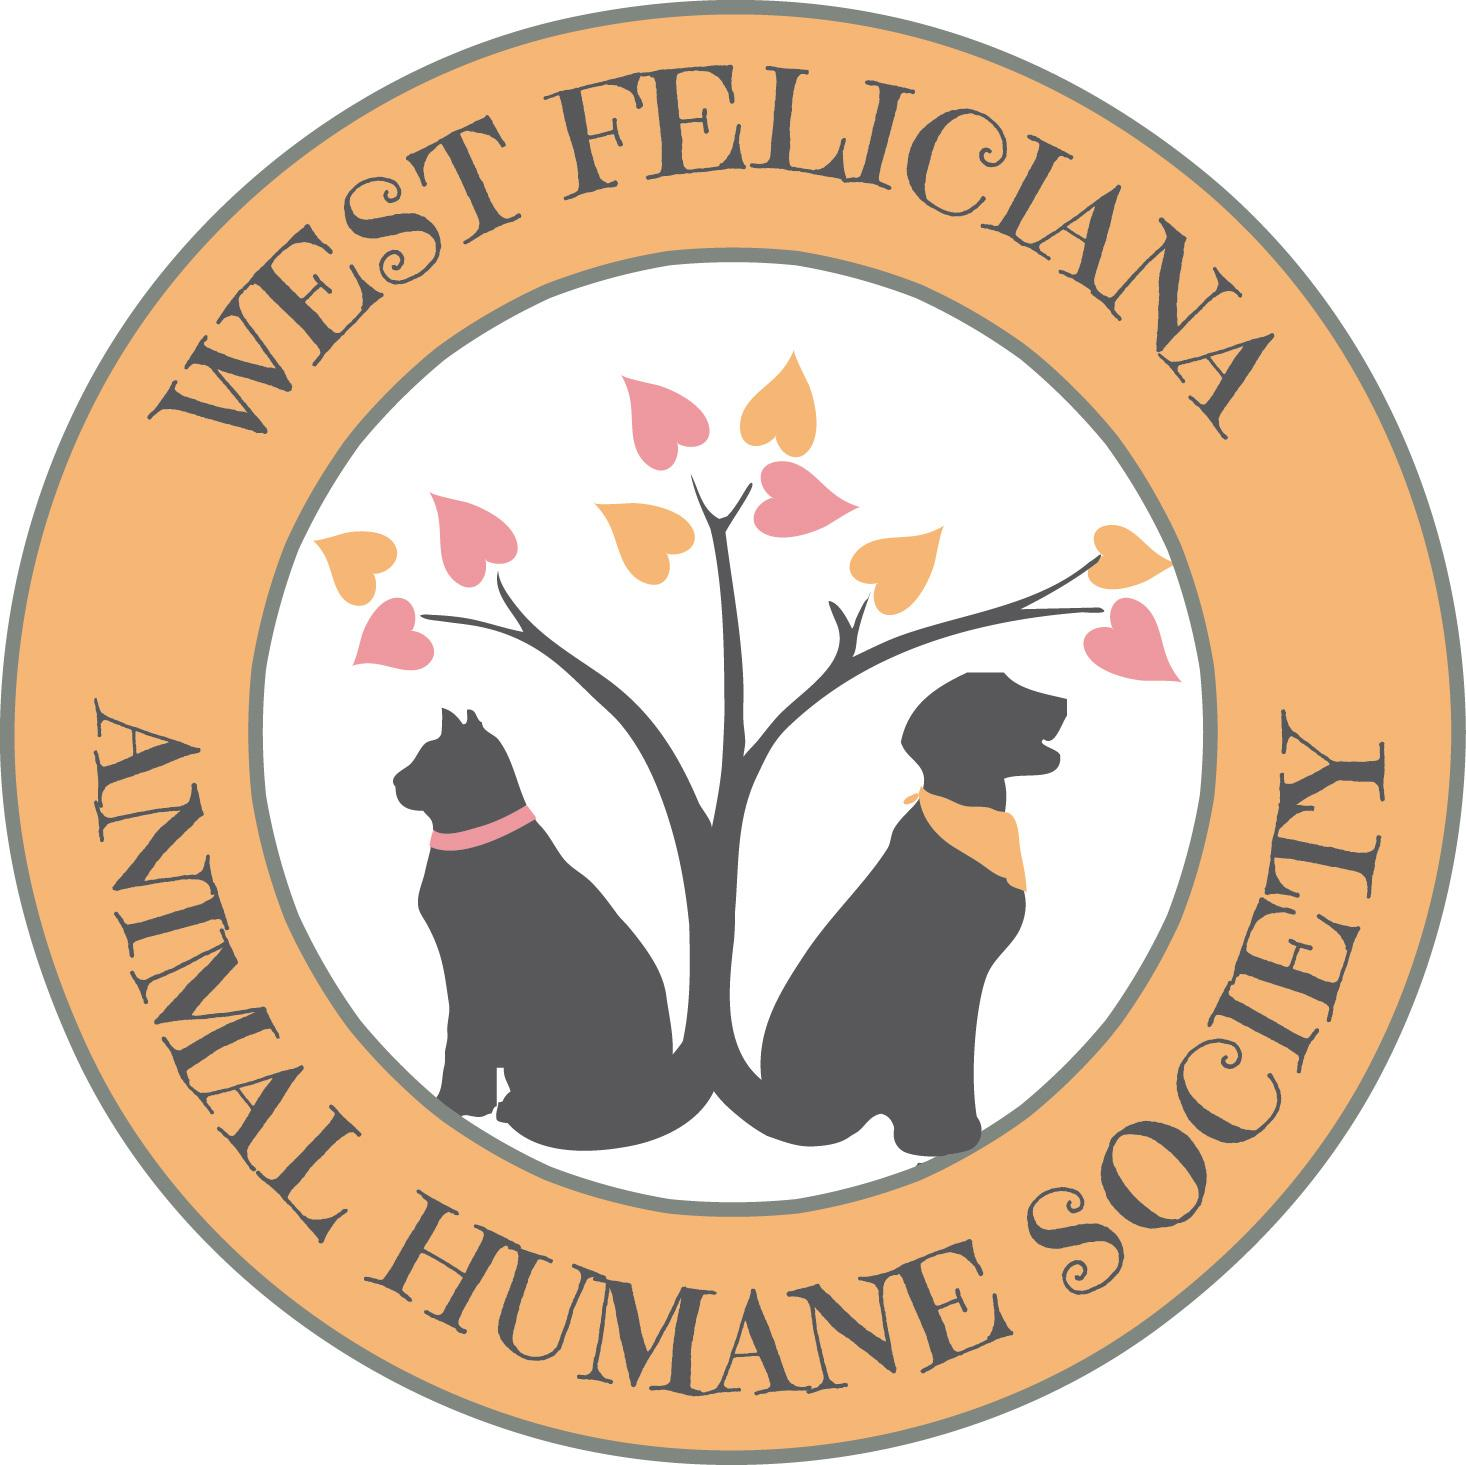 West Feliciana Animal Humane Society